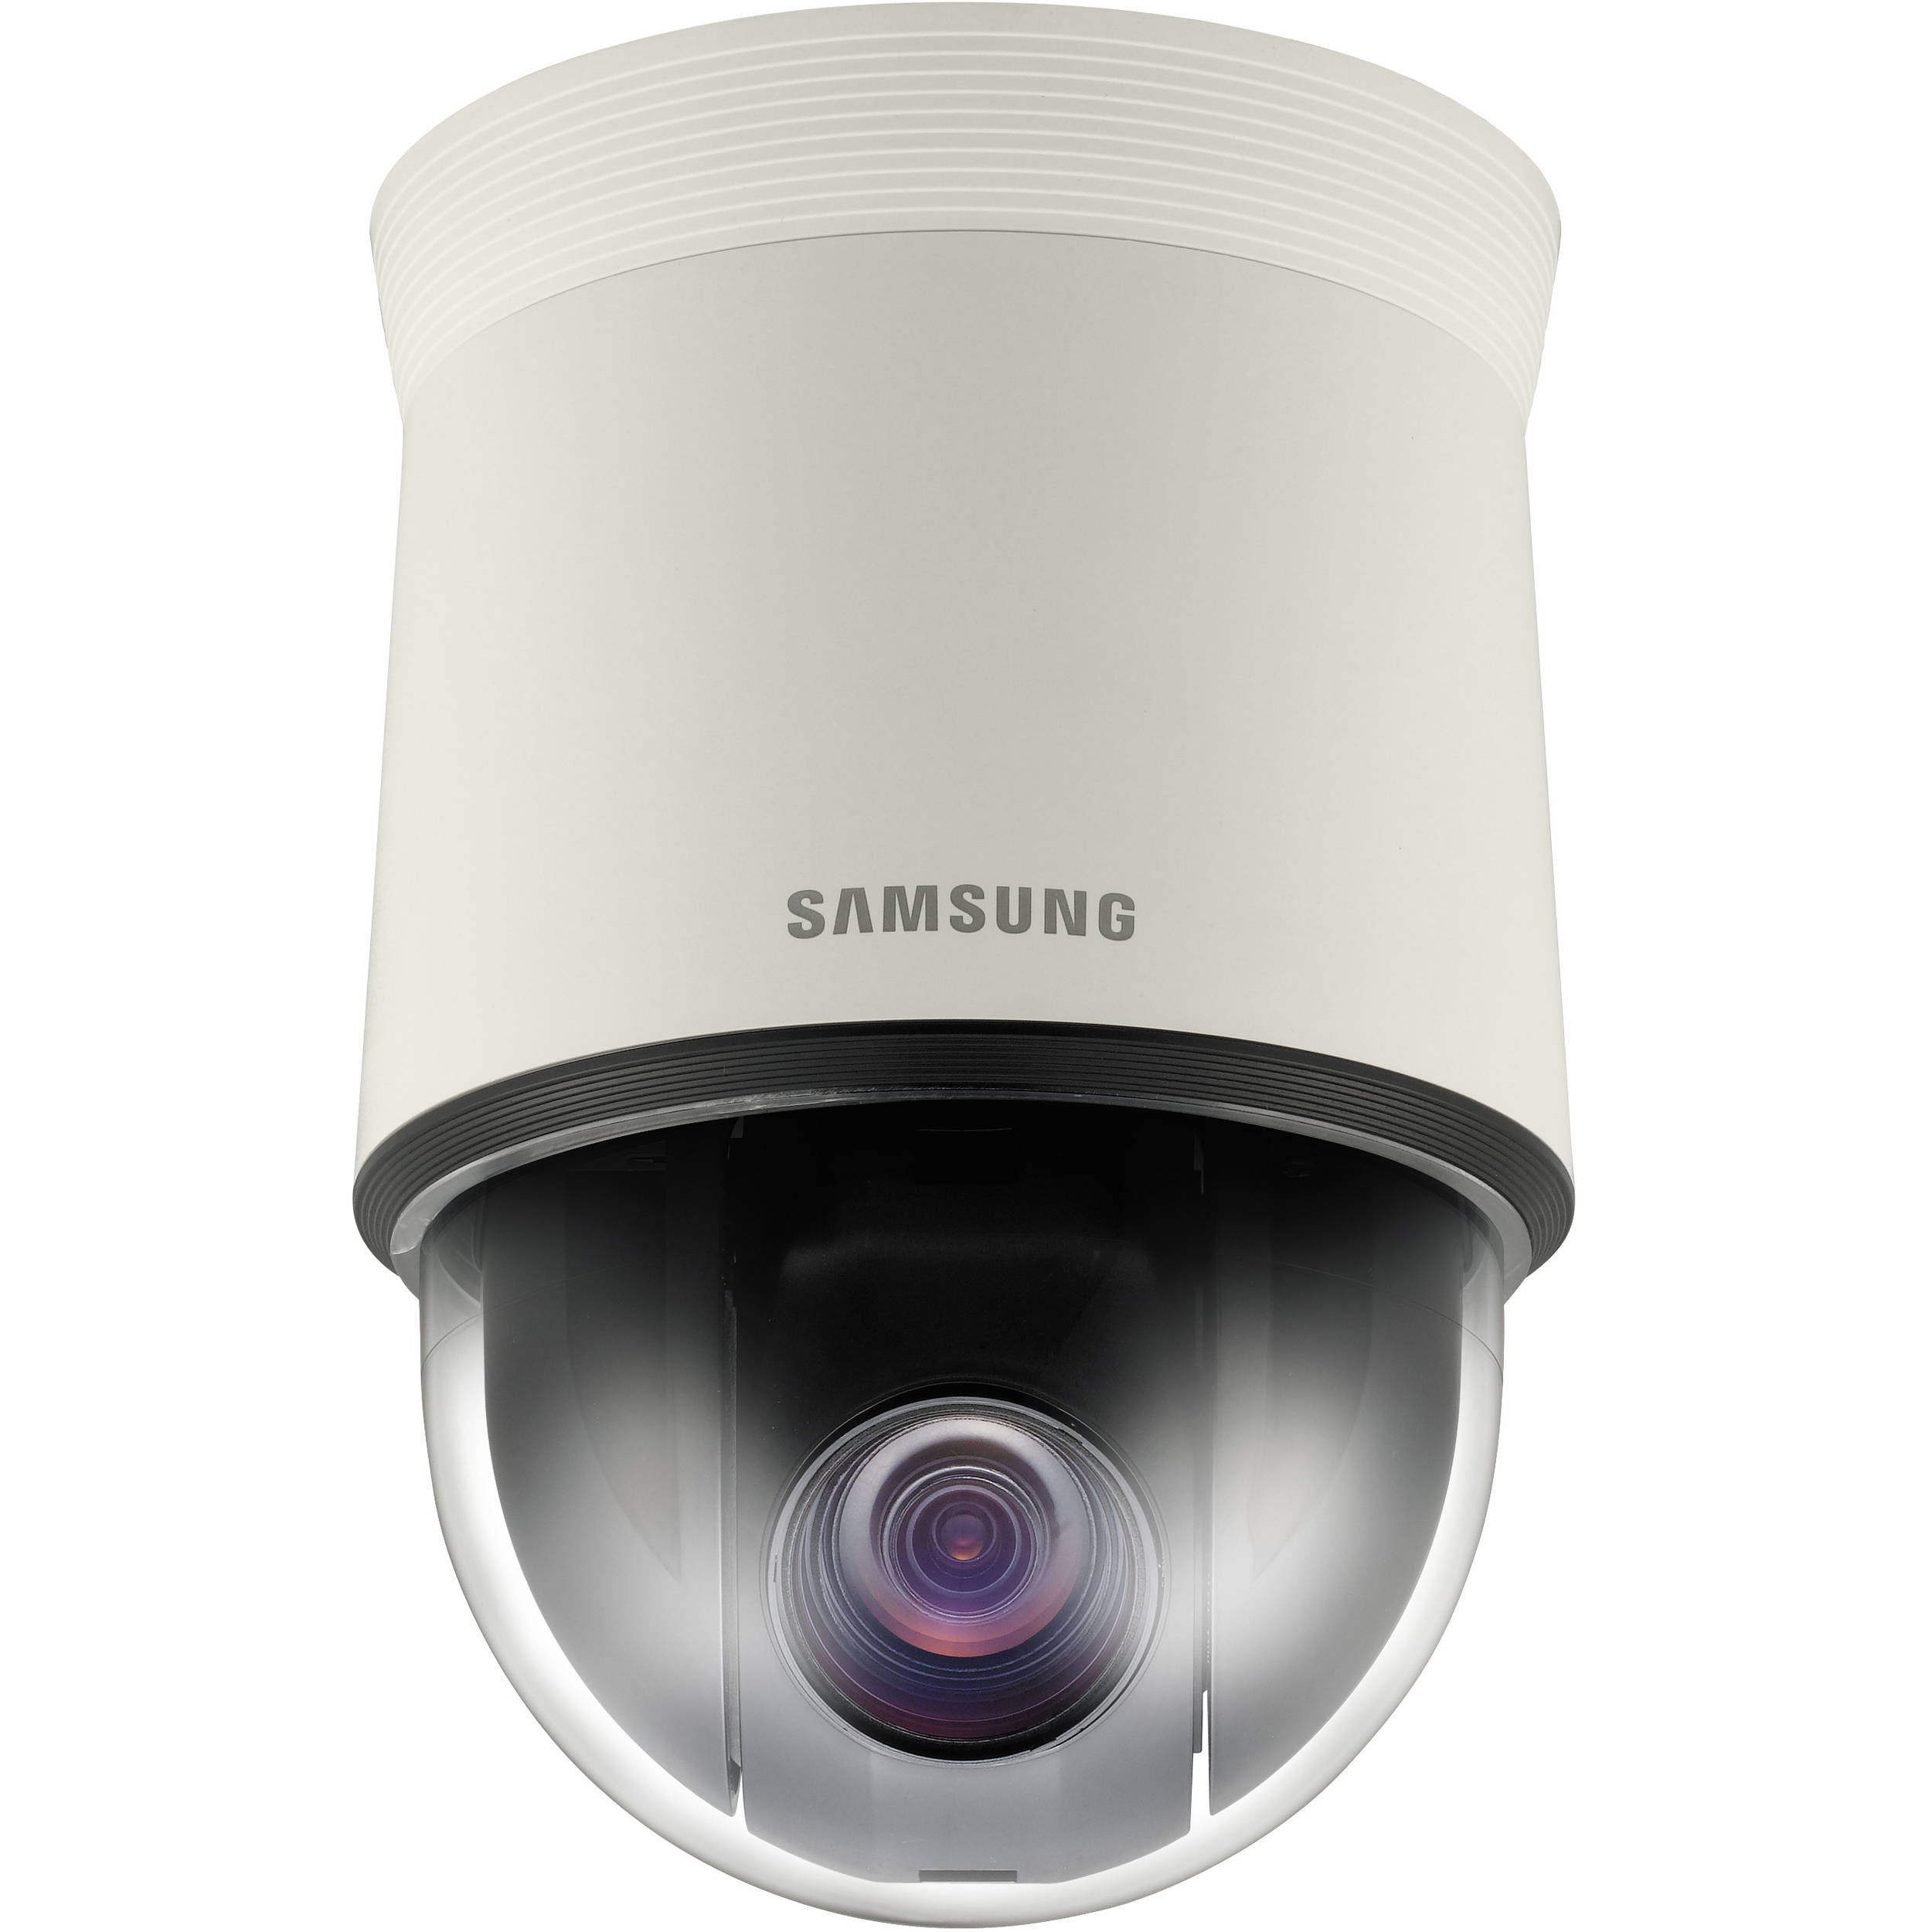 Samsung Techwin SCP-2271 27x High Resolution PTZ Indoor Dome Camera (Ivory)